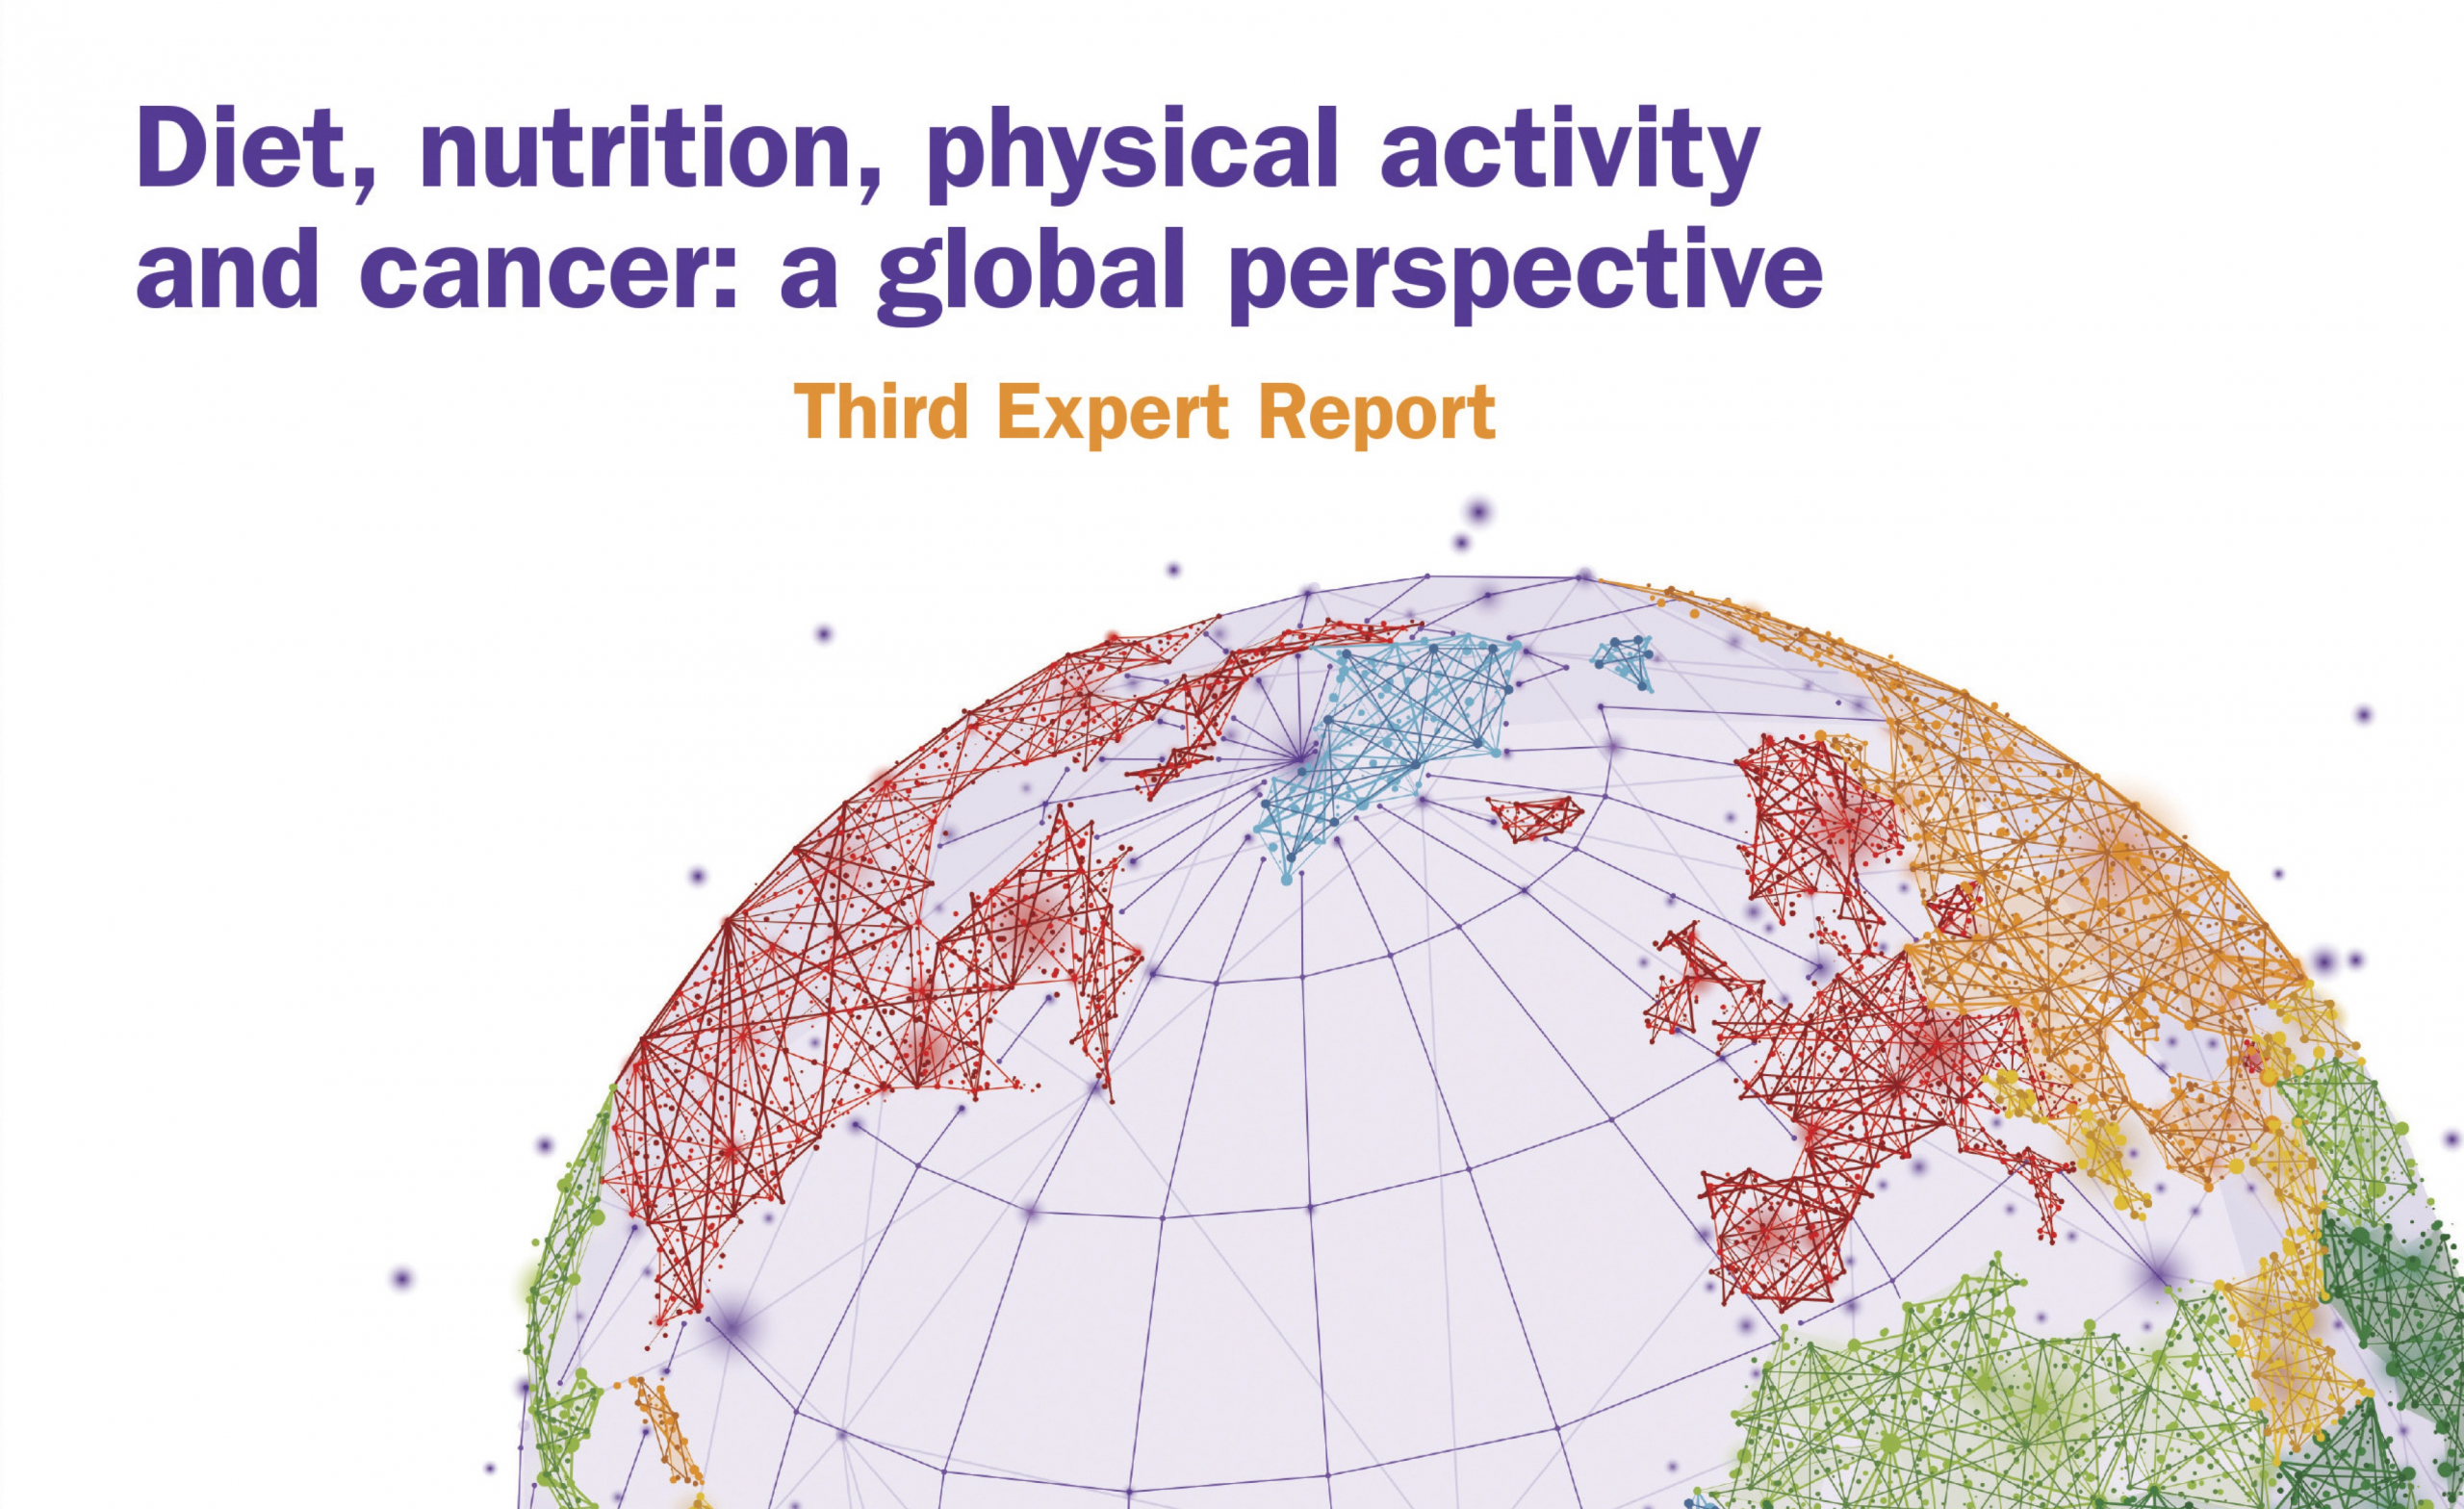 Third expert report banner on diet, nutrition, physical activity, and cancer